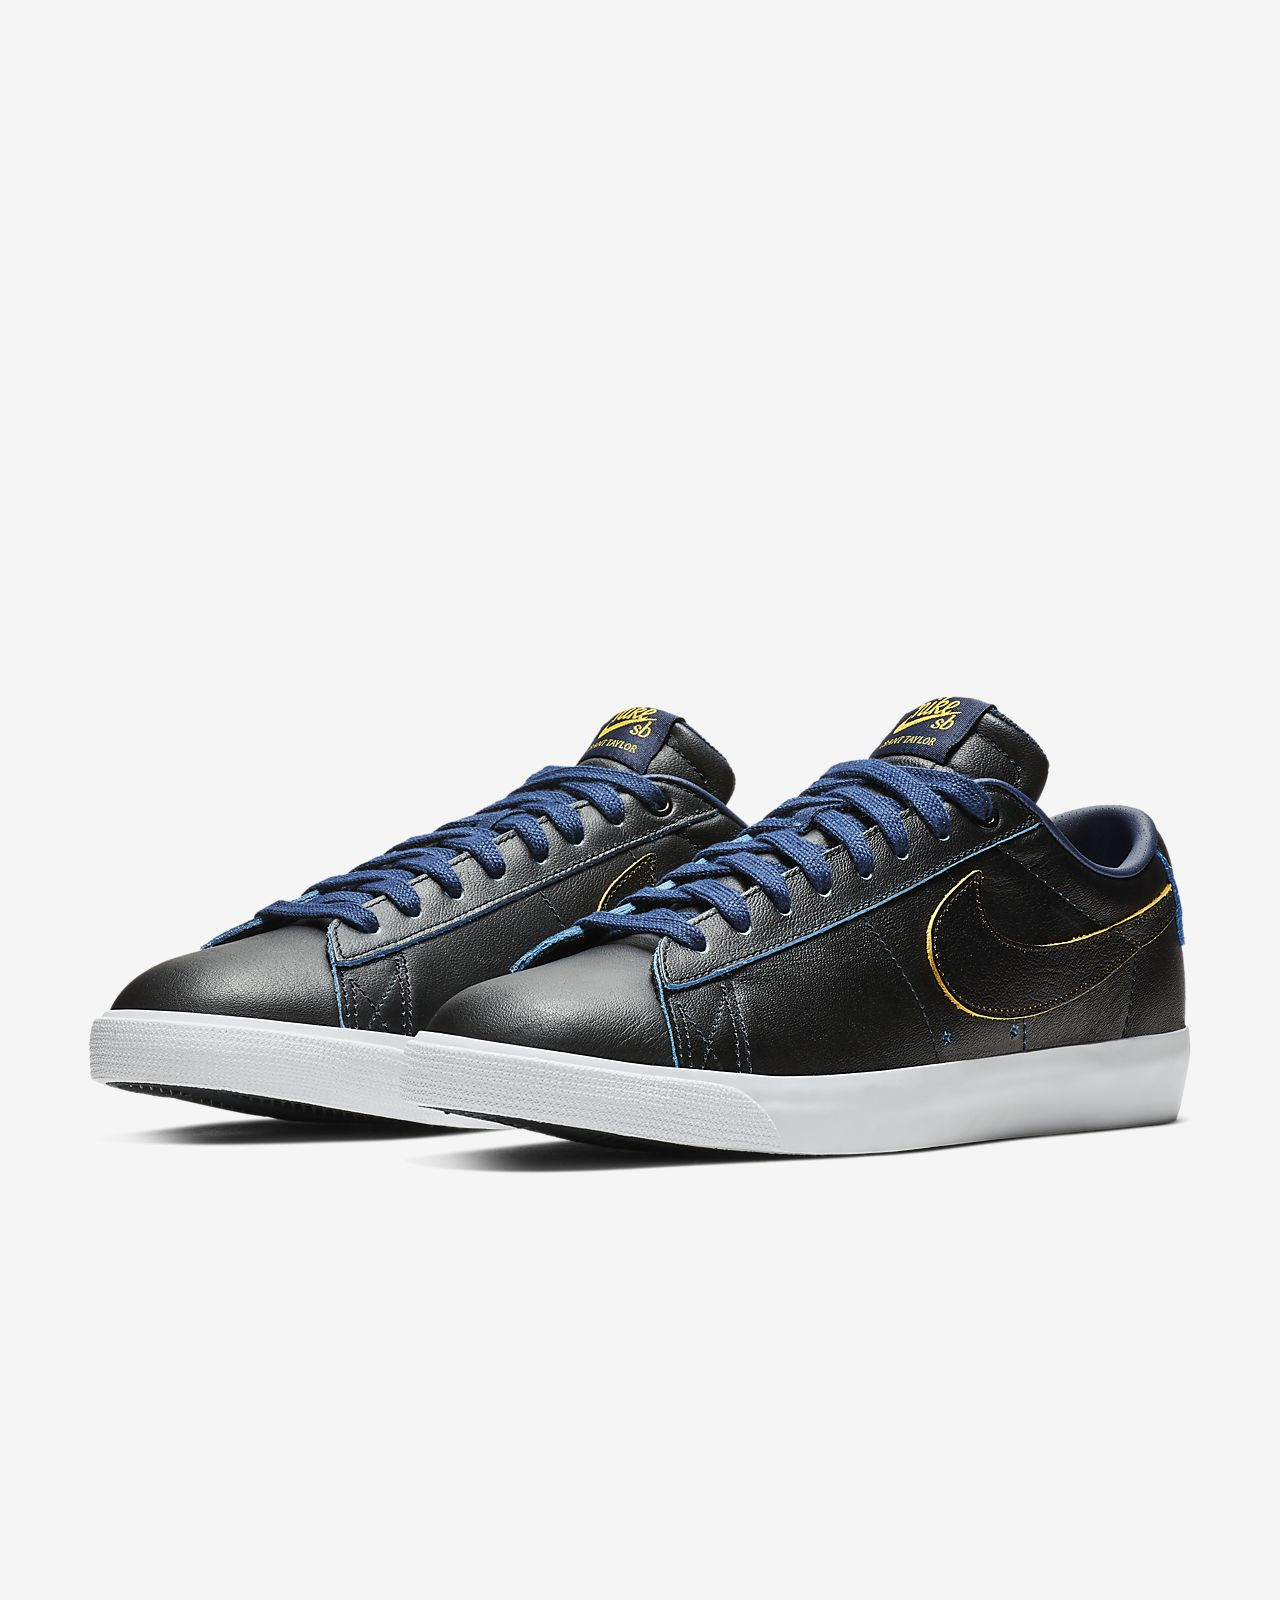 44b24920741f Nike SB Blazer Low GT NBA Men s Skate Shoe. Nike.com AU